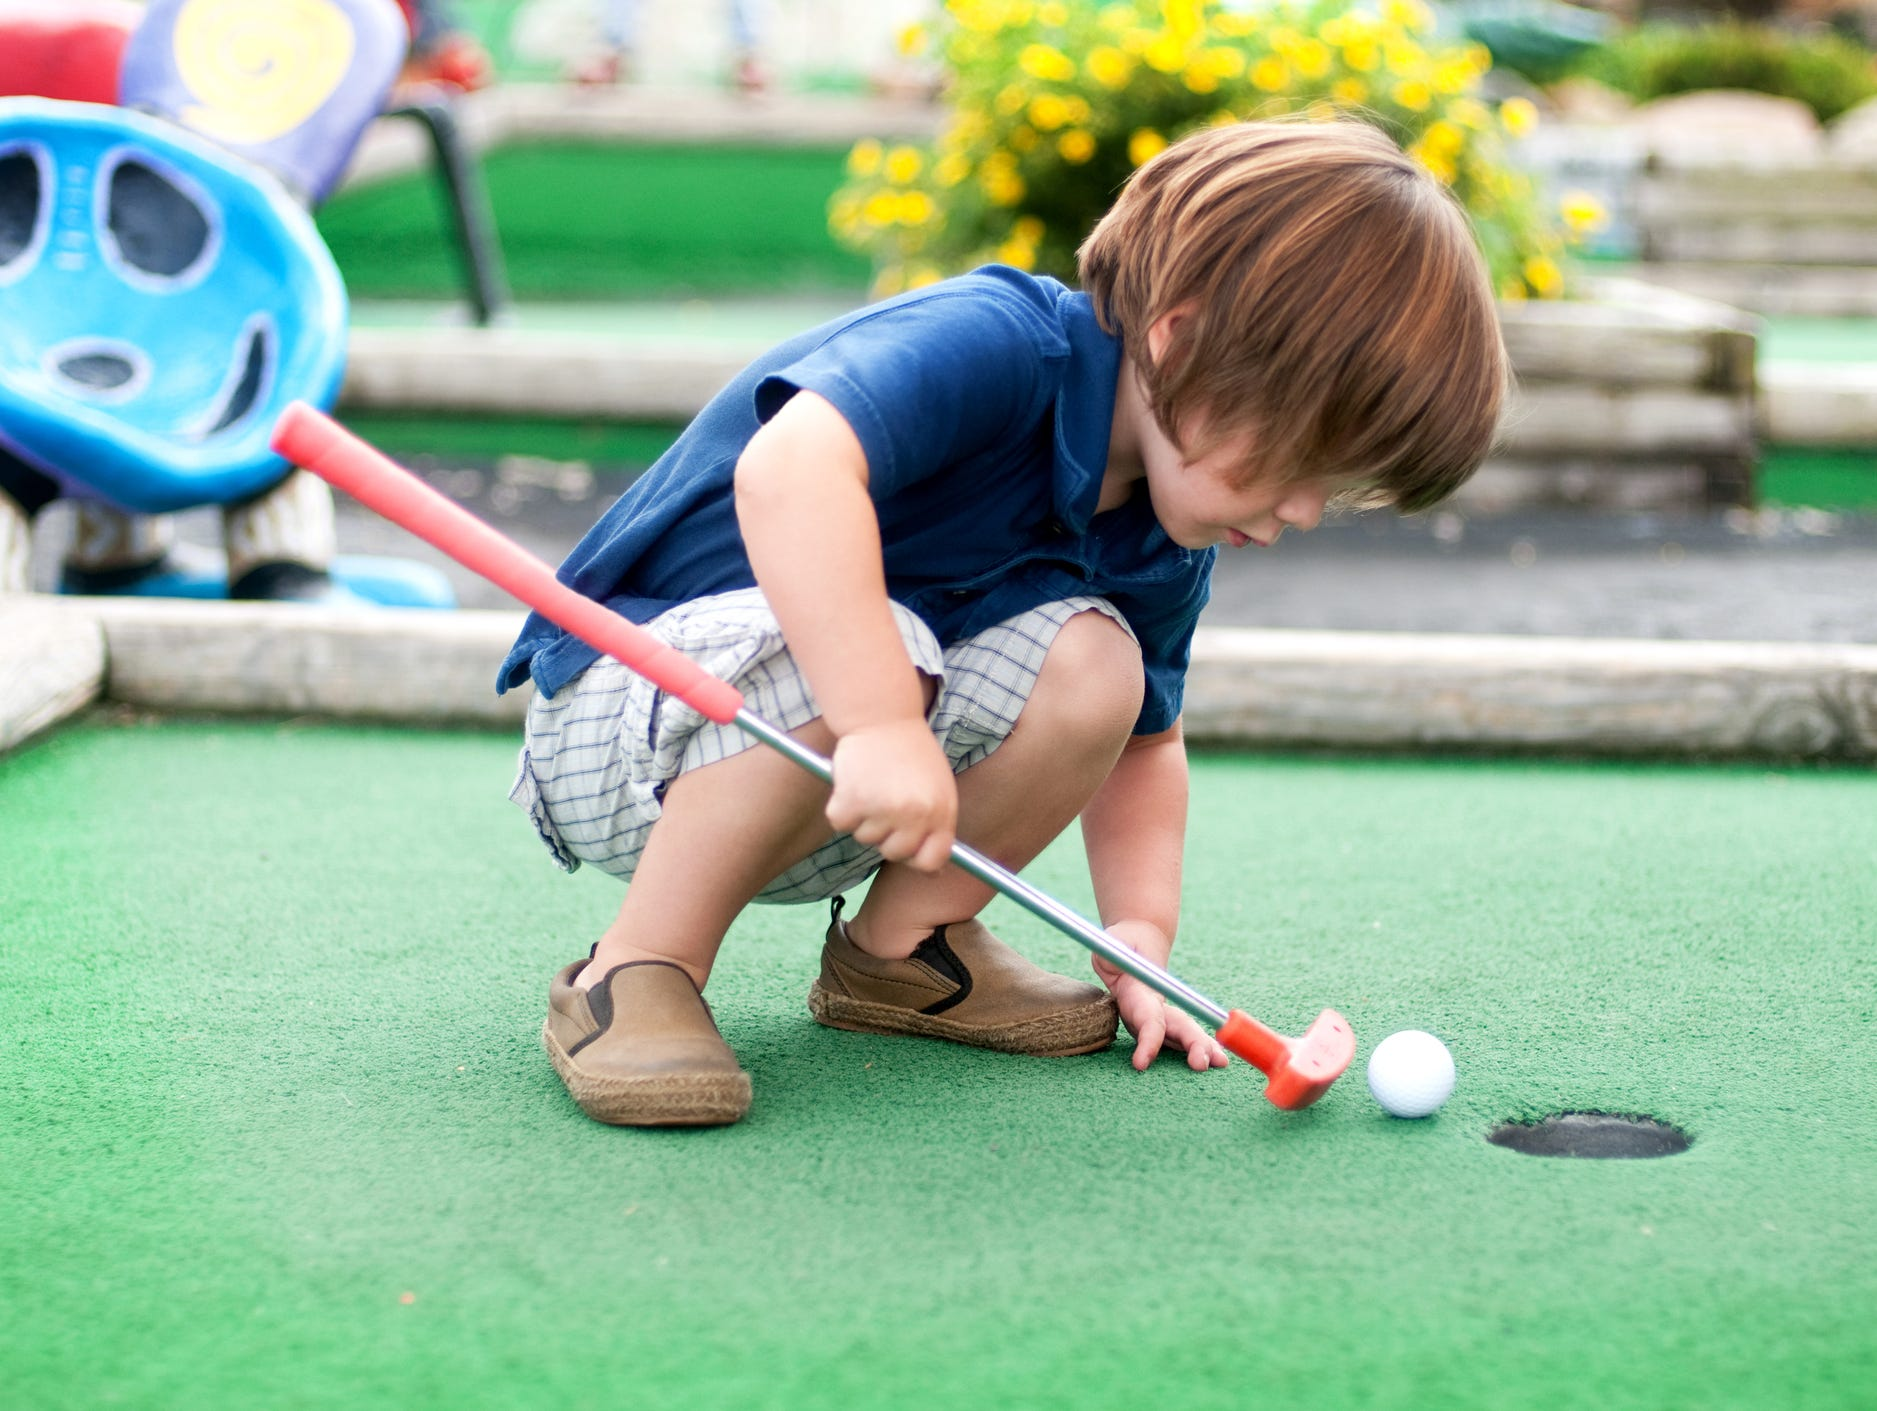 Insider, print your coupon today for free mini golf admission at Nascar Speedpark Smoky Mountains.